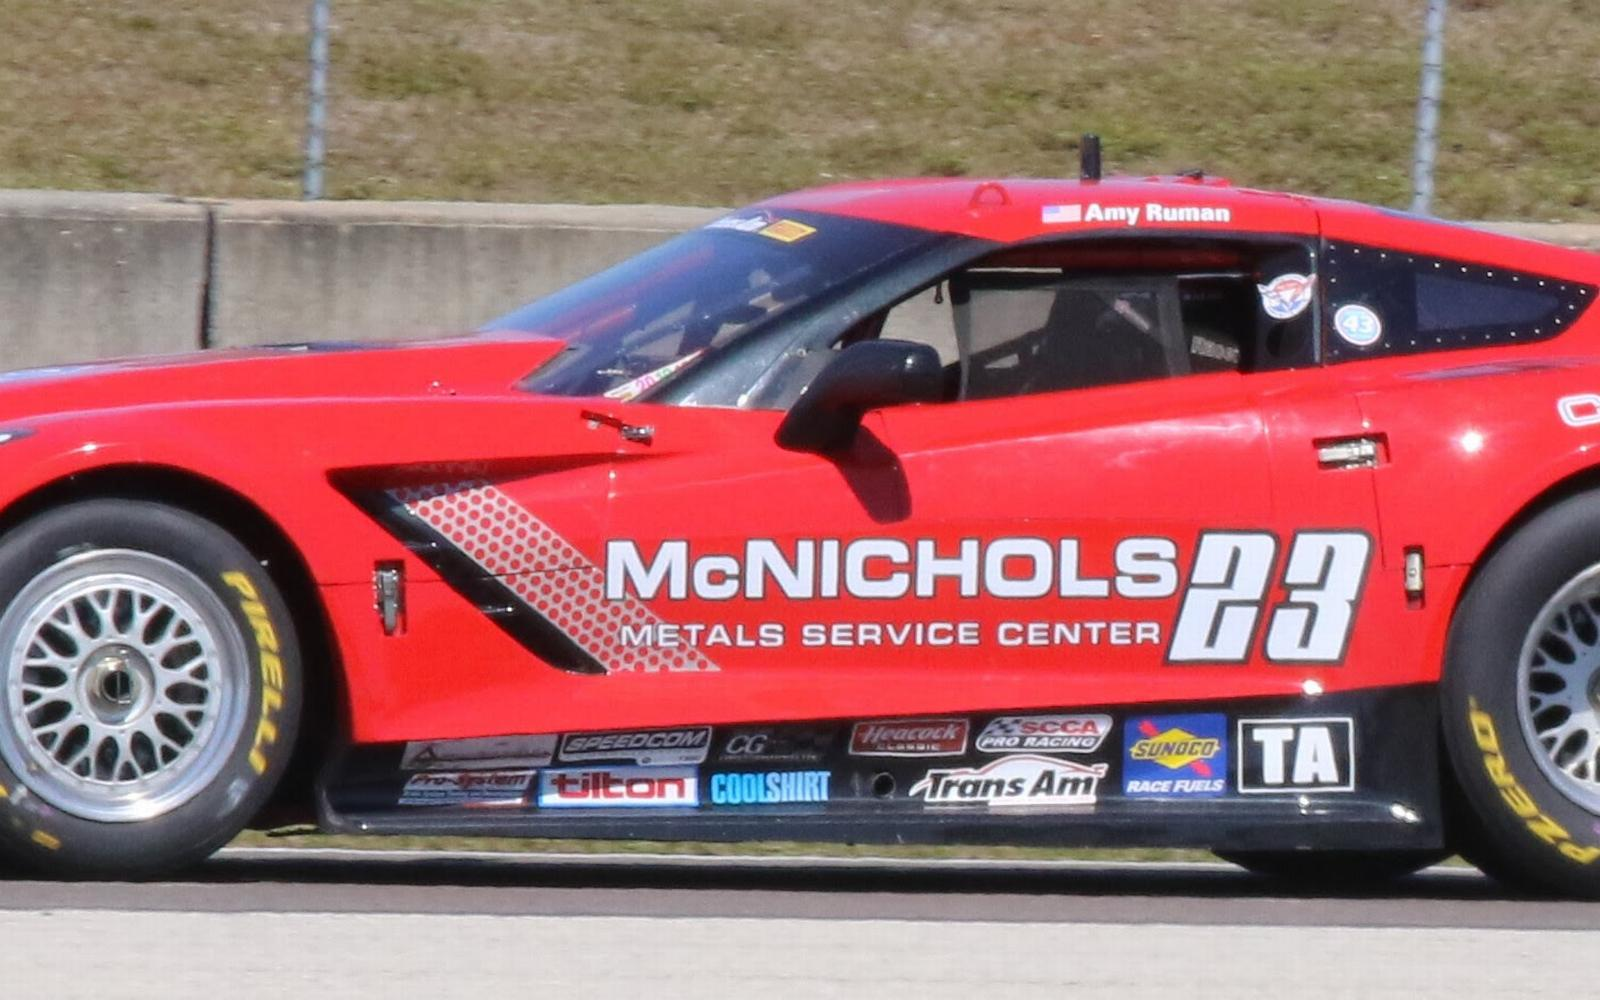 Ruman and McNichols Co. Eye 2021 Trans Am Championship Season Kicks off at Sebring SpeedTour Sunday